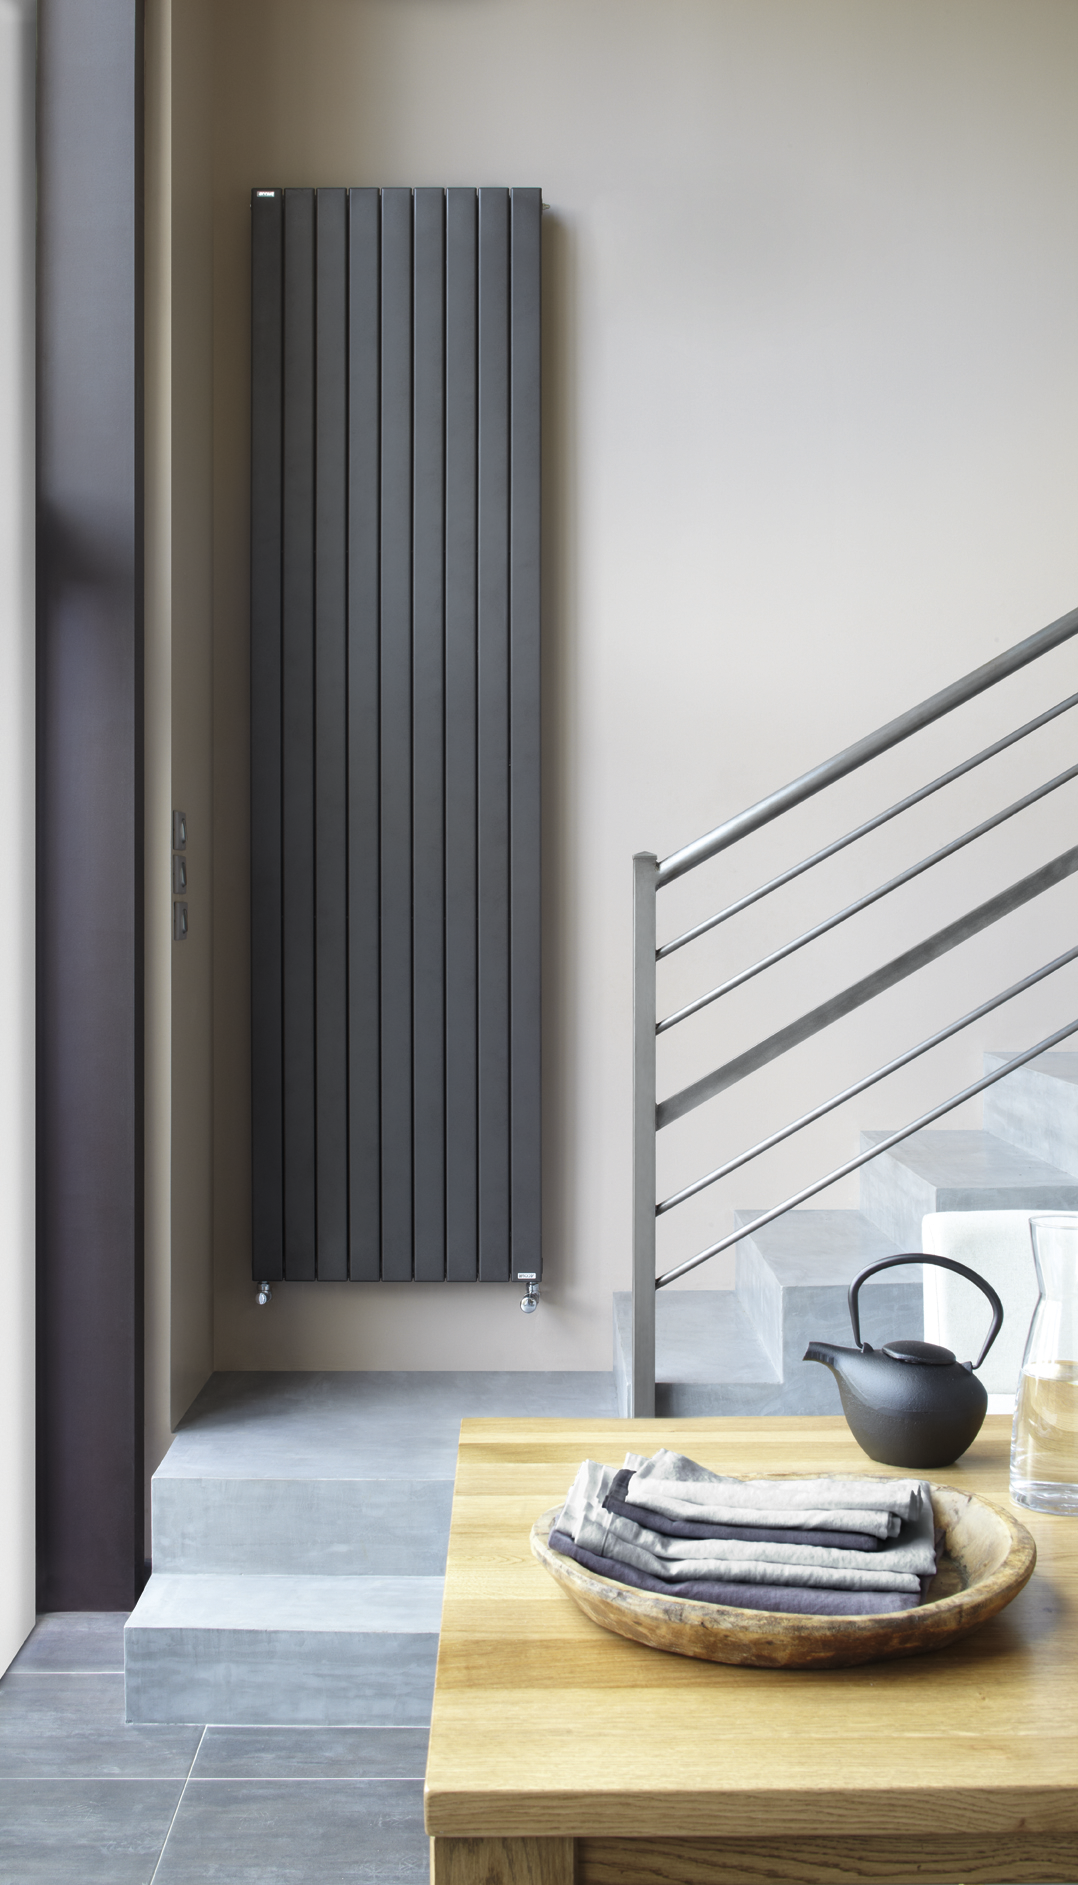 acova chauffage radiateur with acova chauffage latest. Black Bedroom Furniture Sets. Home Design Ideas